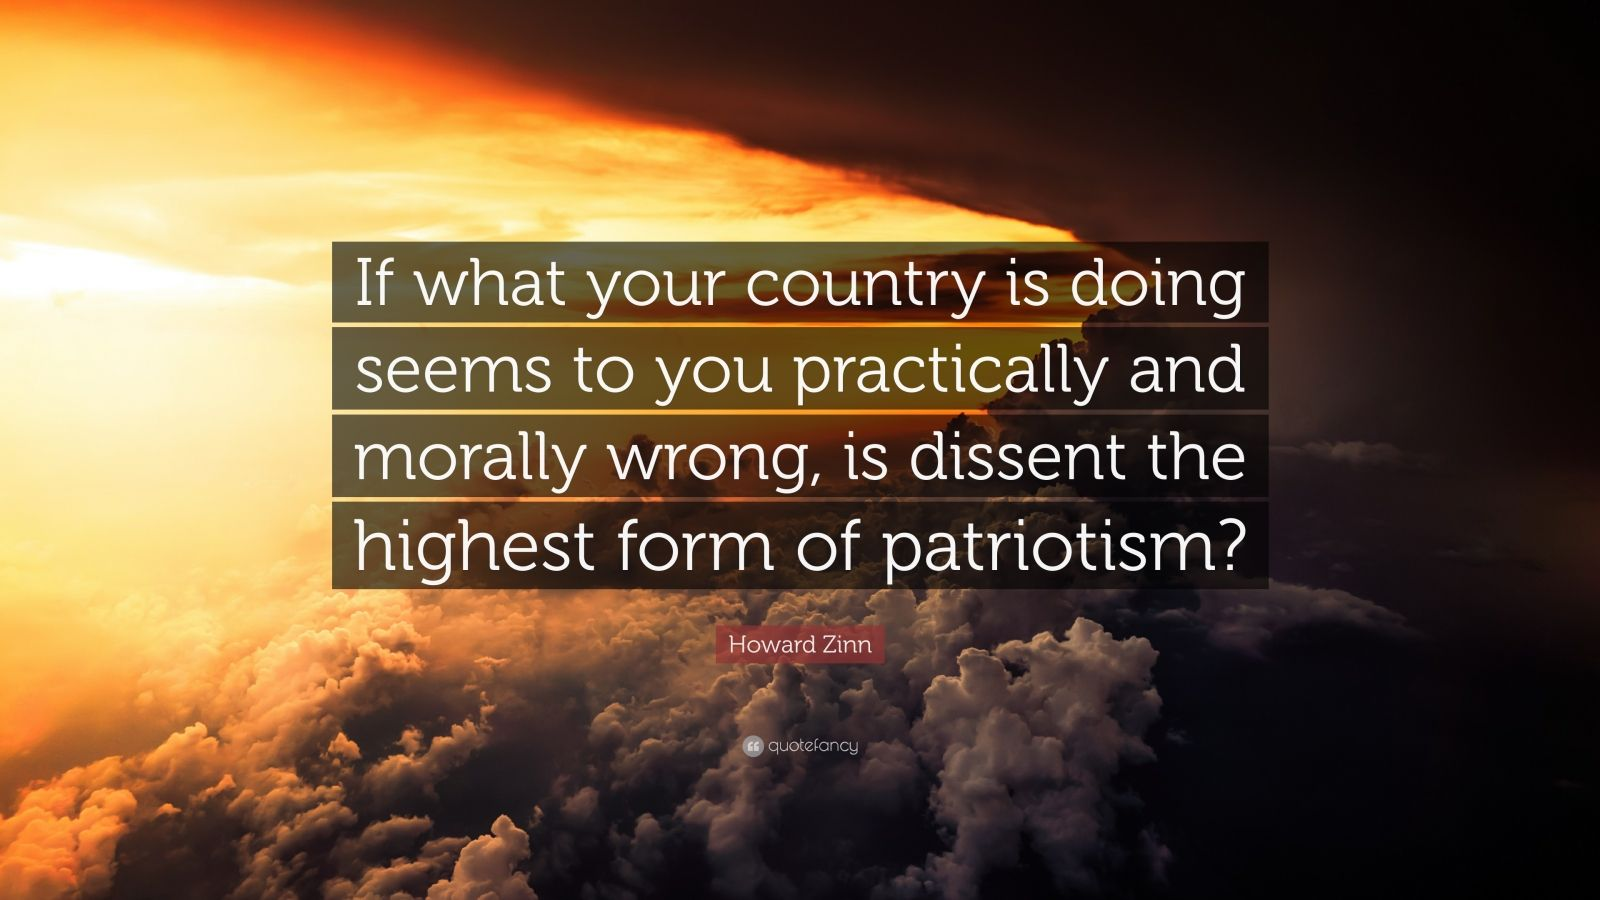 """Howard Zinn Quote: """"If what your country is doing seems to you practically and morally wrong, is dissent the highest form of patriotism?"""""""